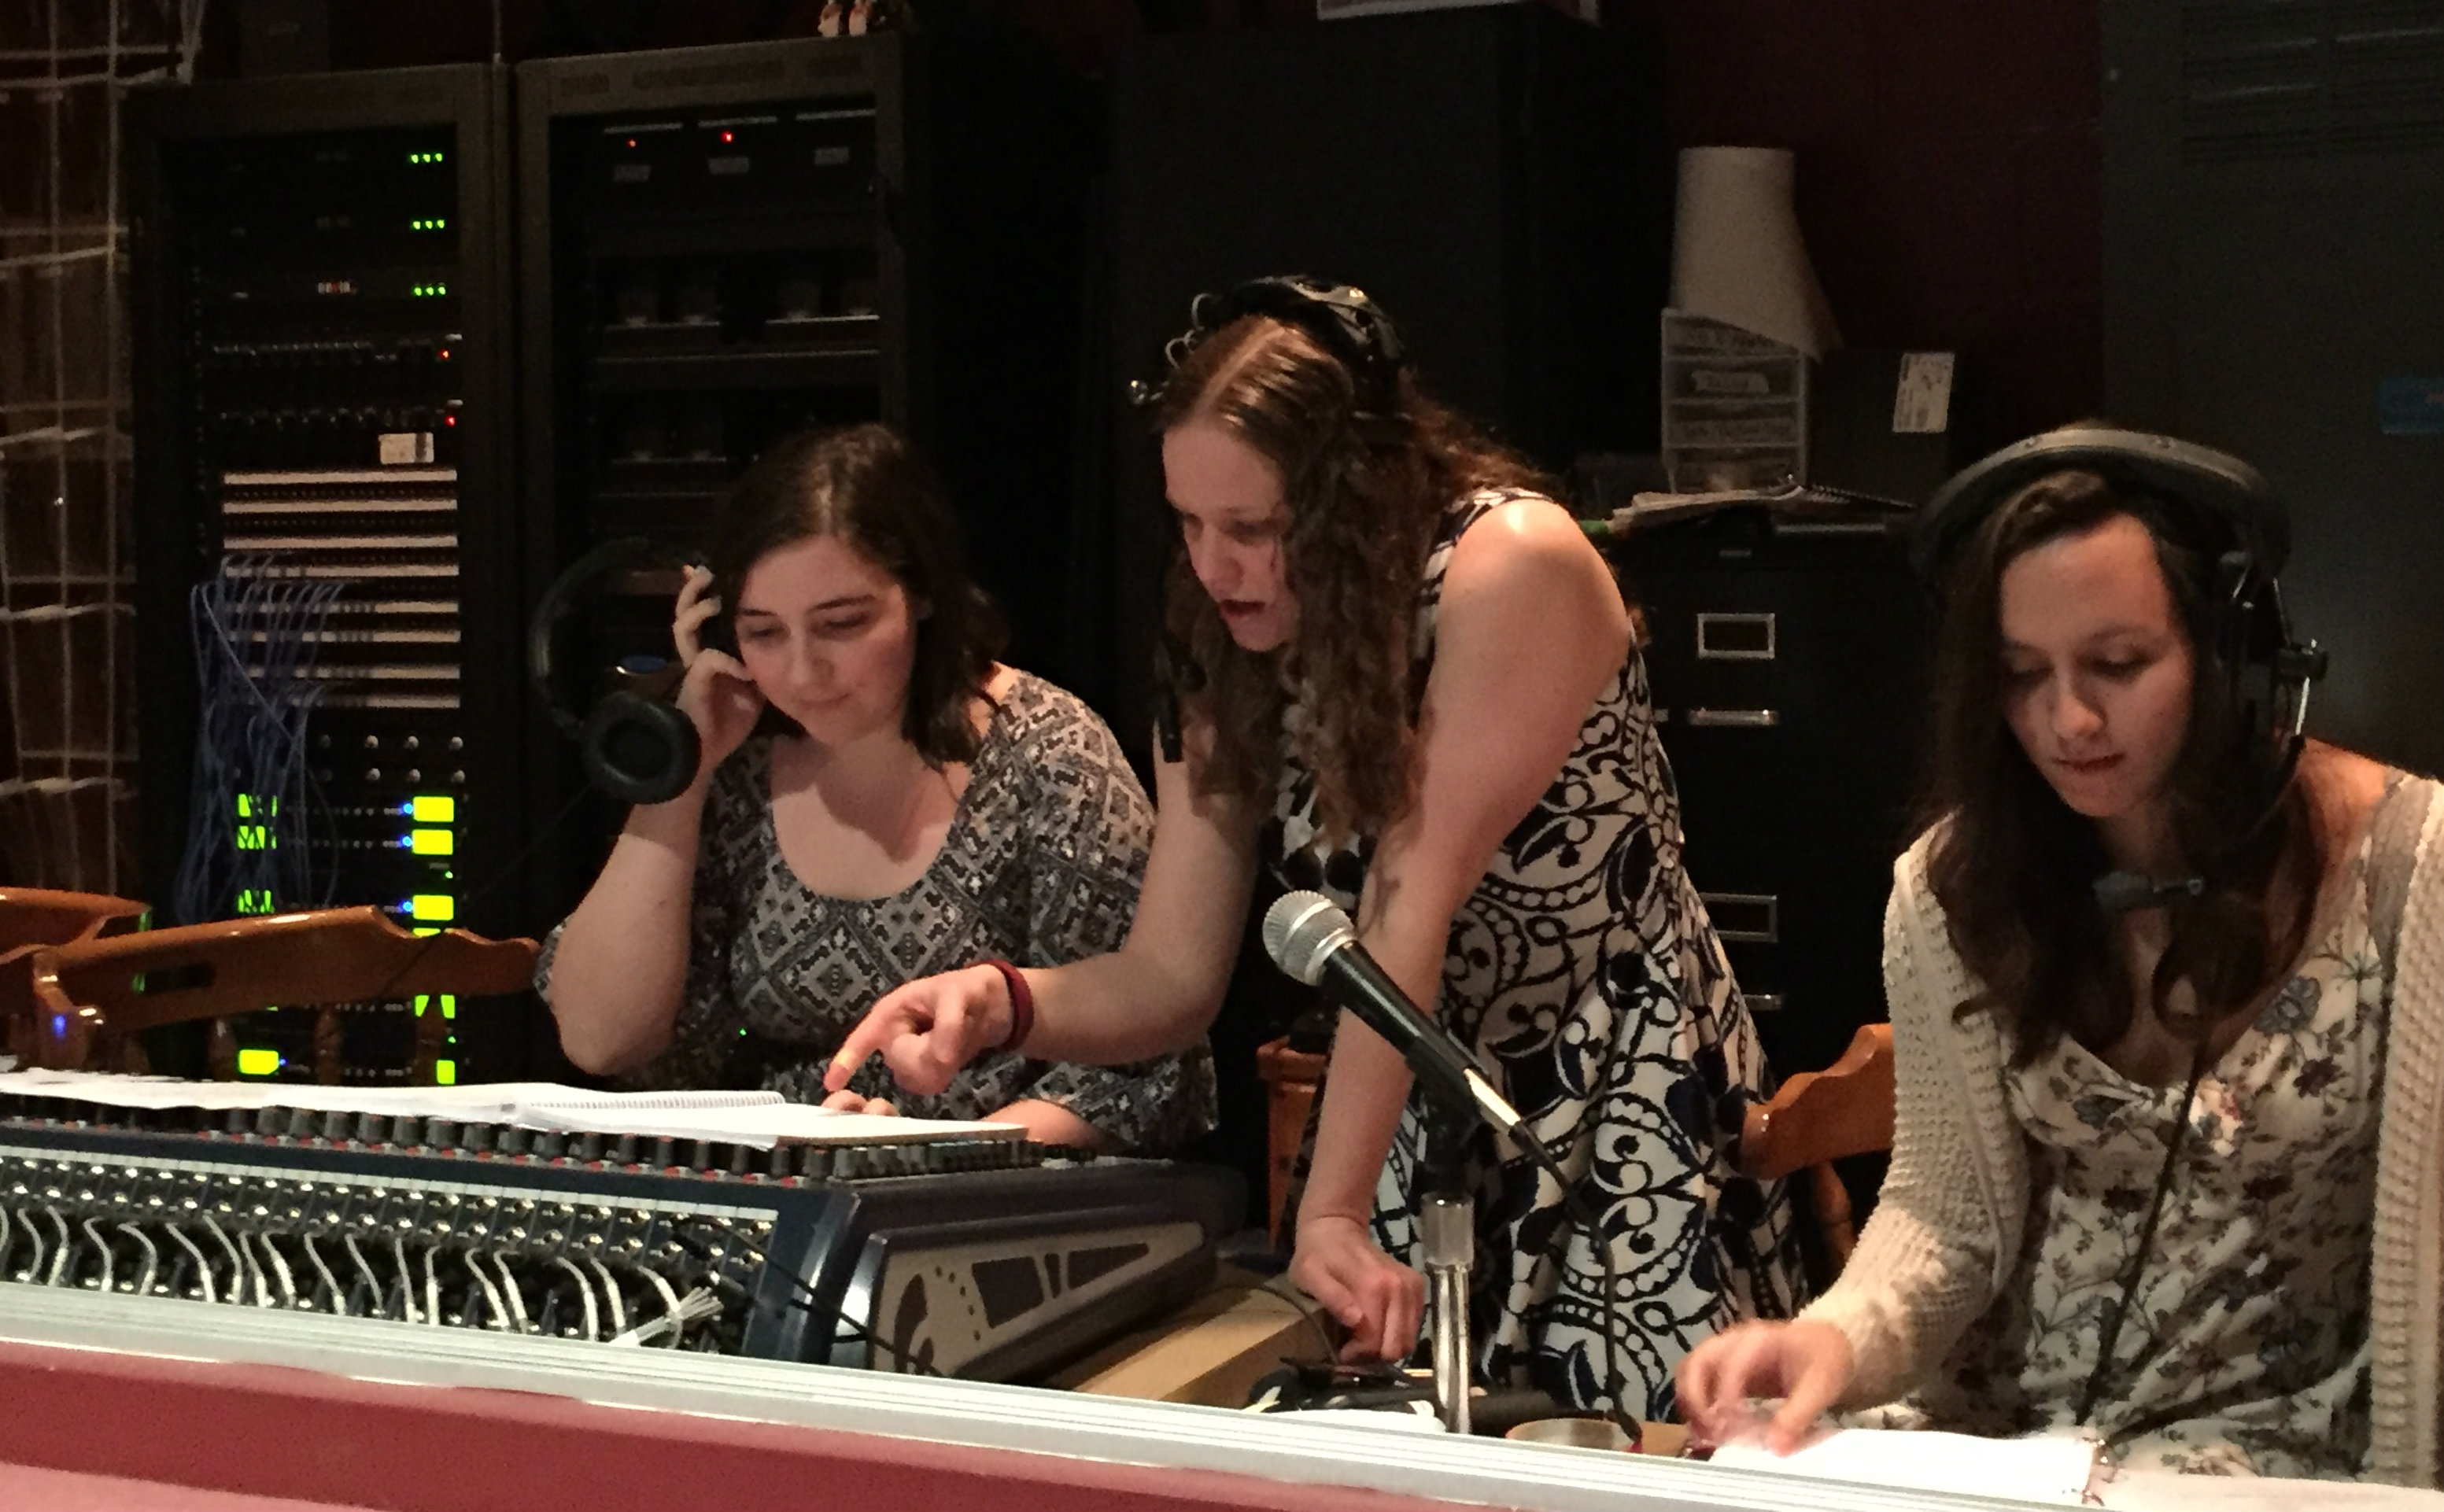 Allison Eckloff, Angela Smithhisler and Martha Madrid run cues for the show.